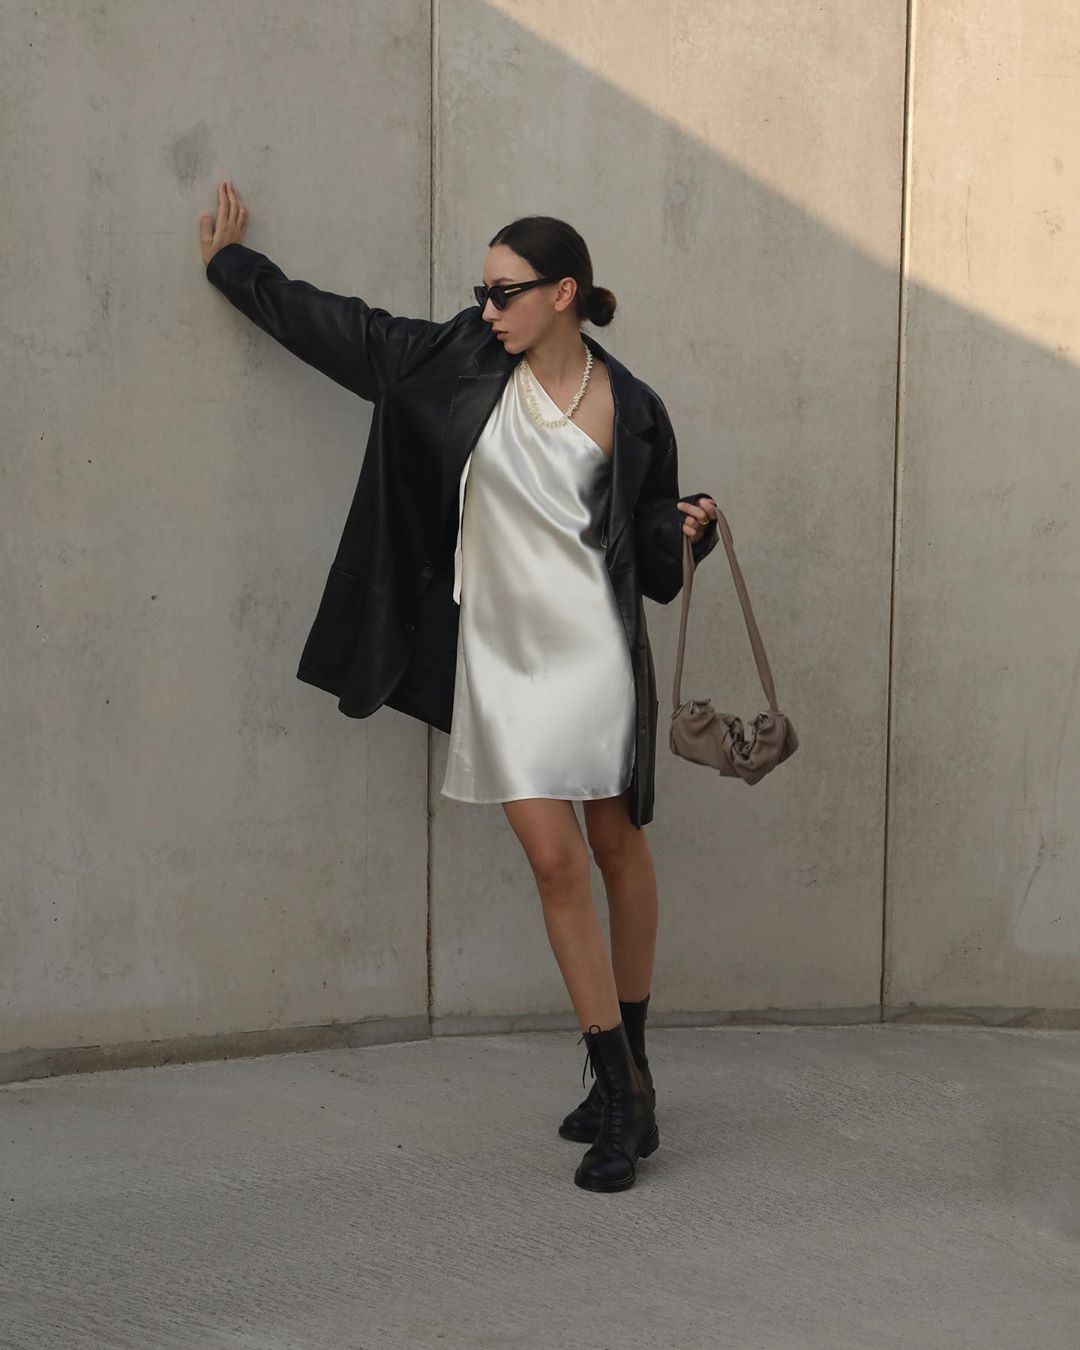 beatrice-gutu-vintage-oversized-leather-blazer-instagram